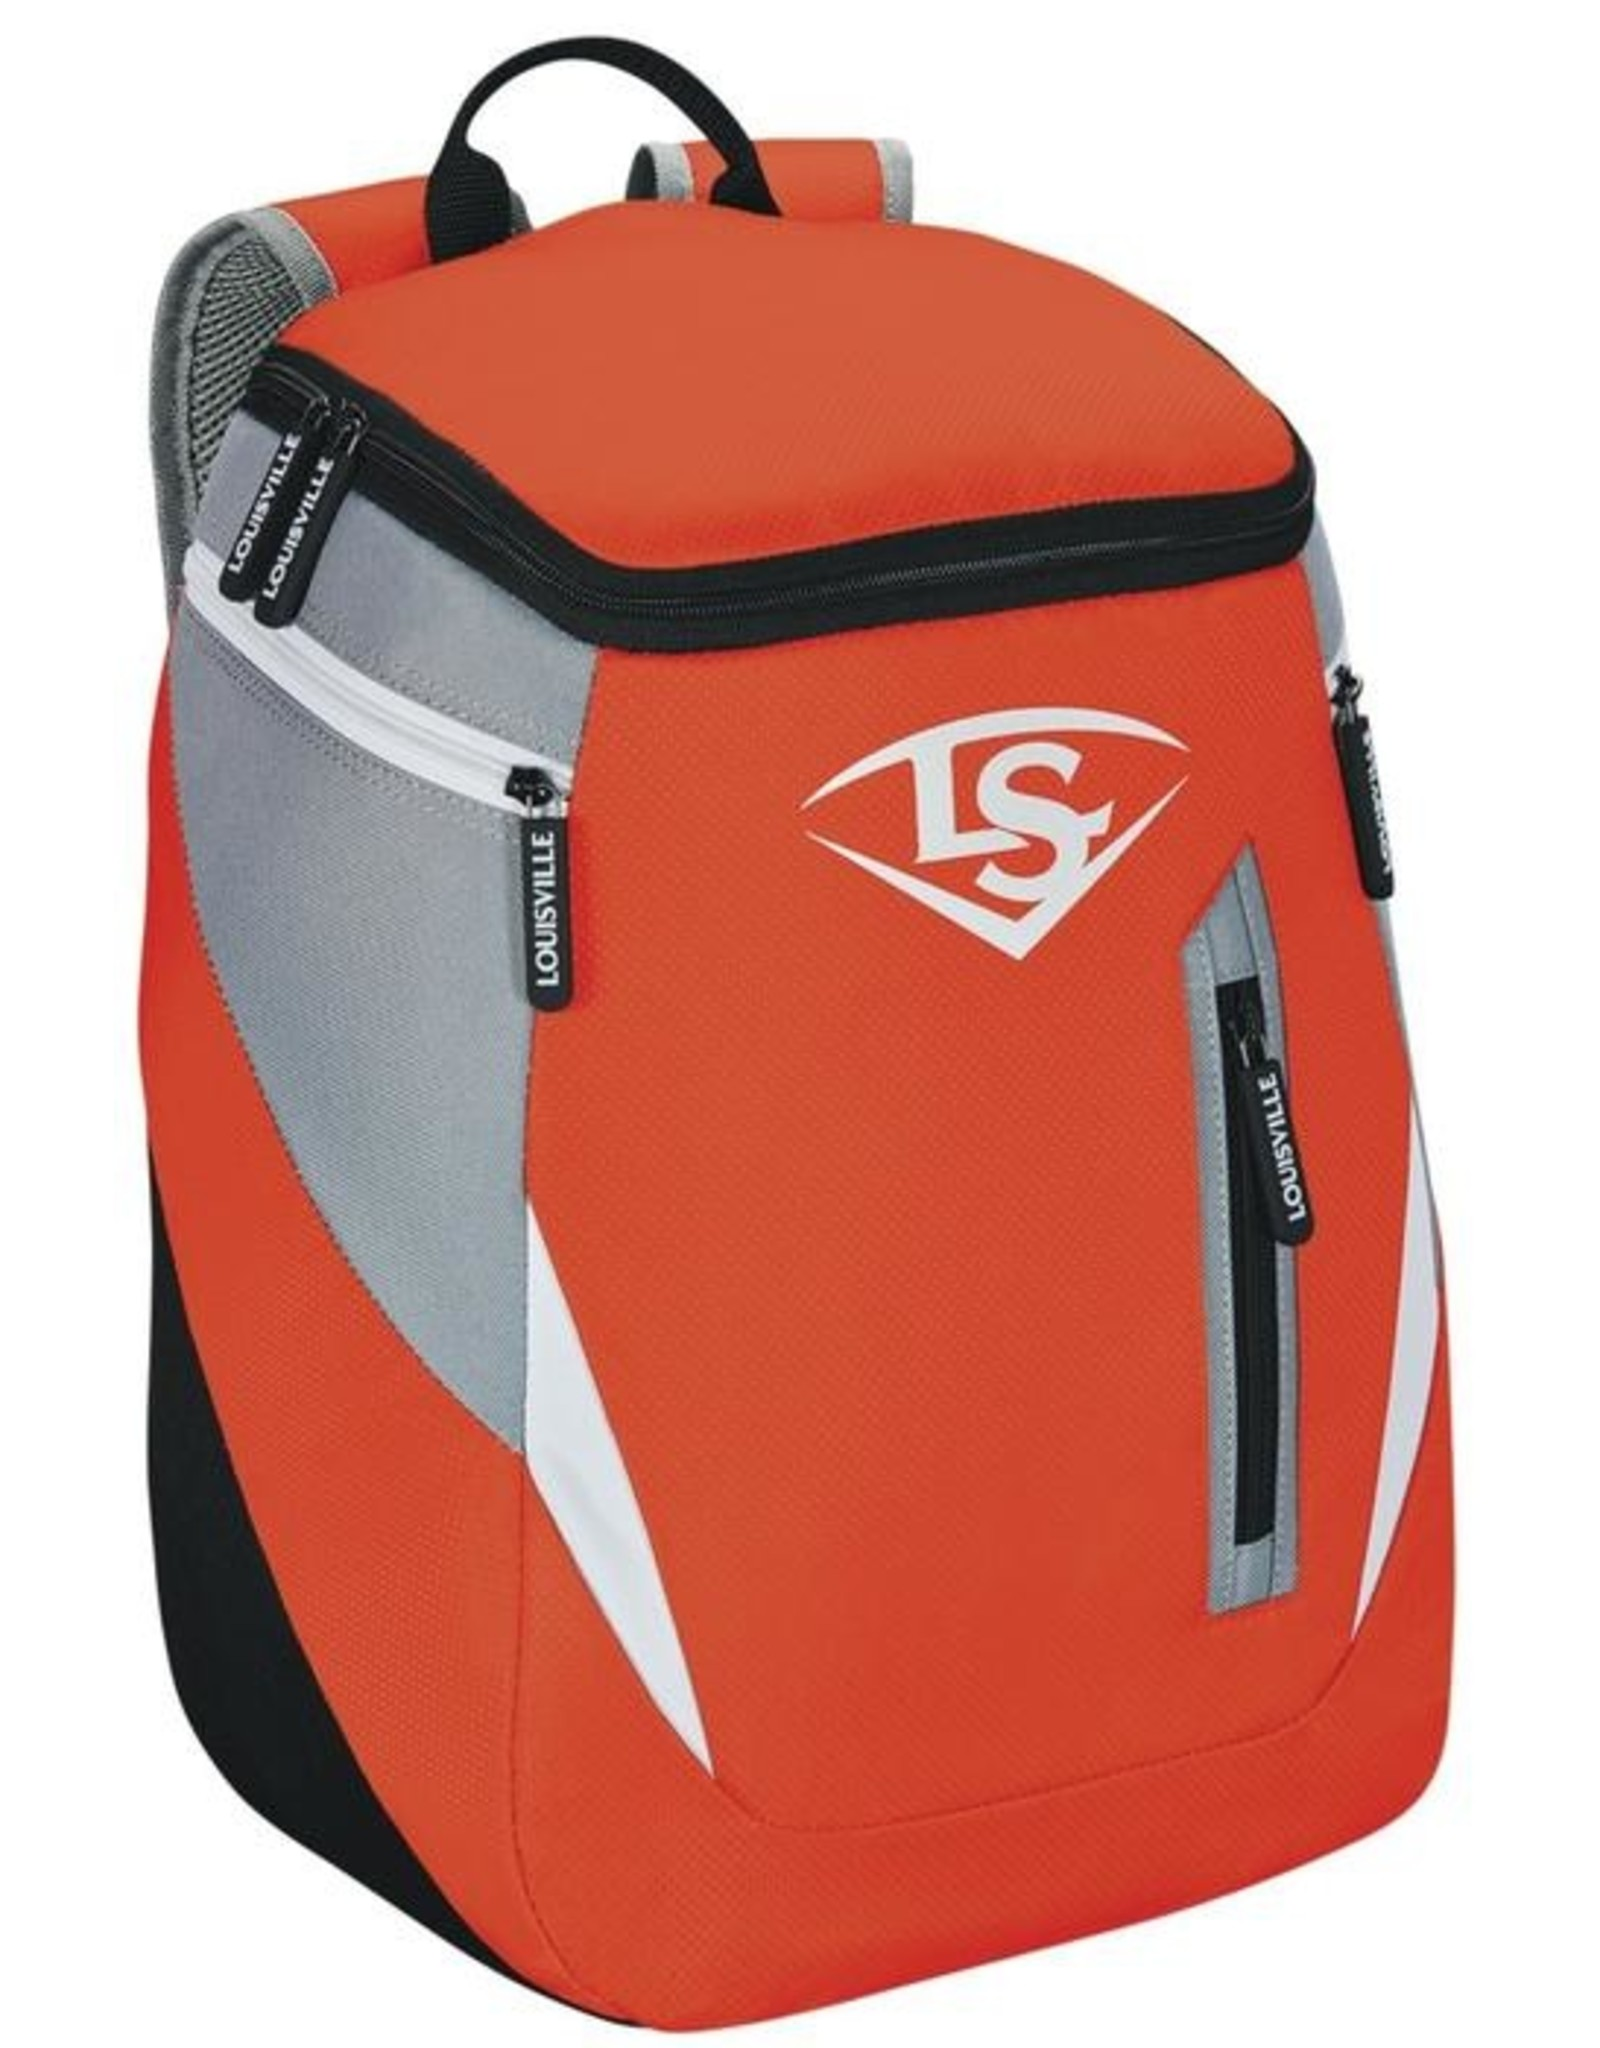 LOUISVILLE SAC BASEBALL LOUISVILLE STICK PACK